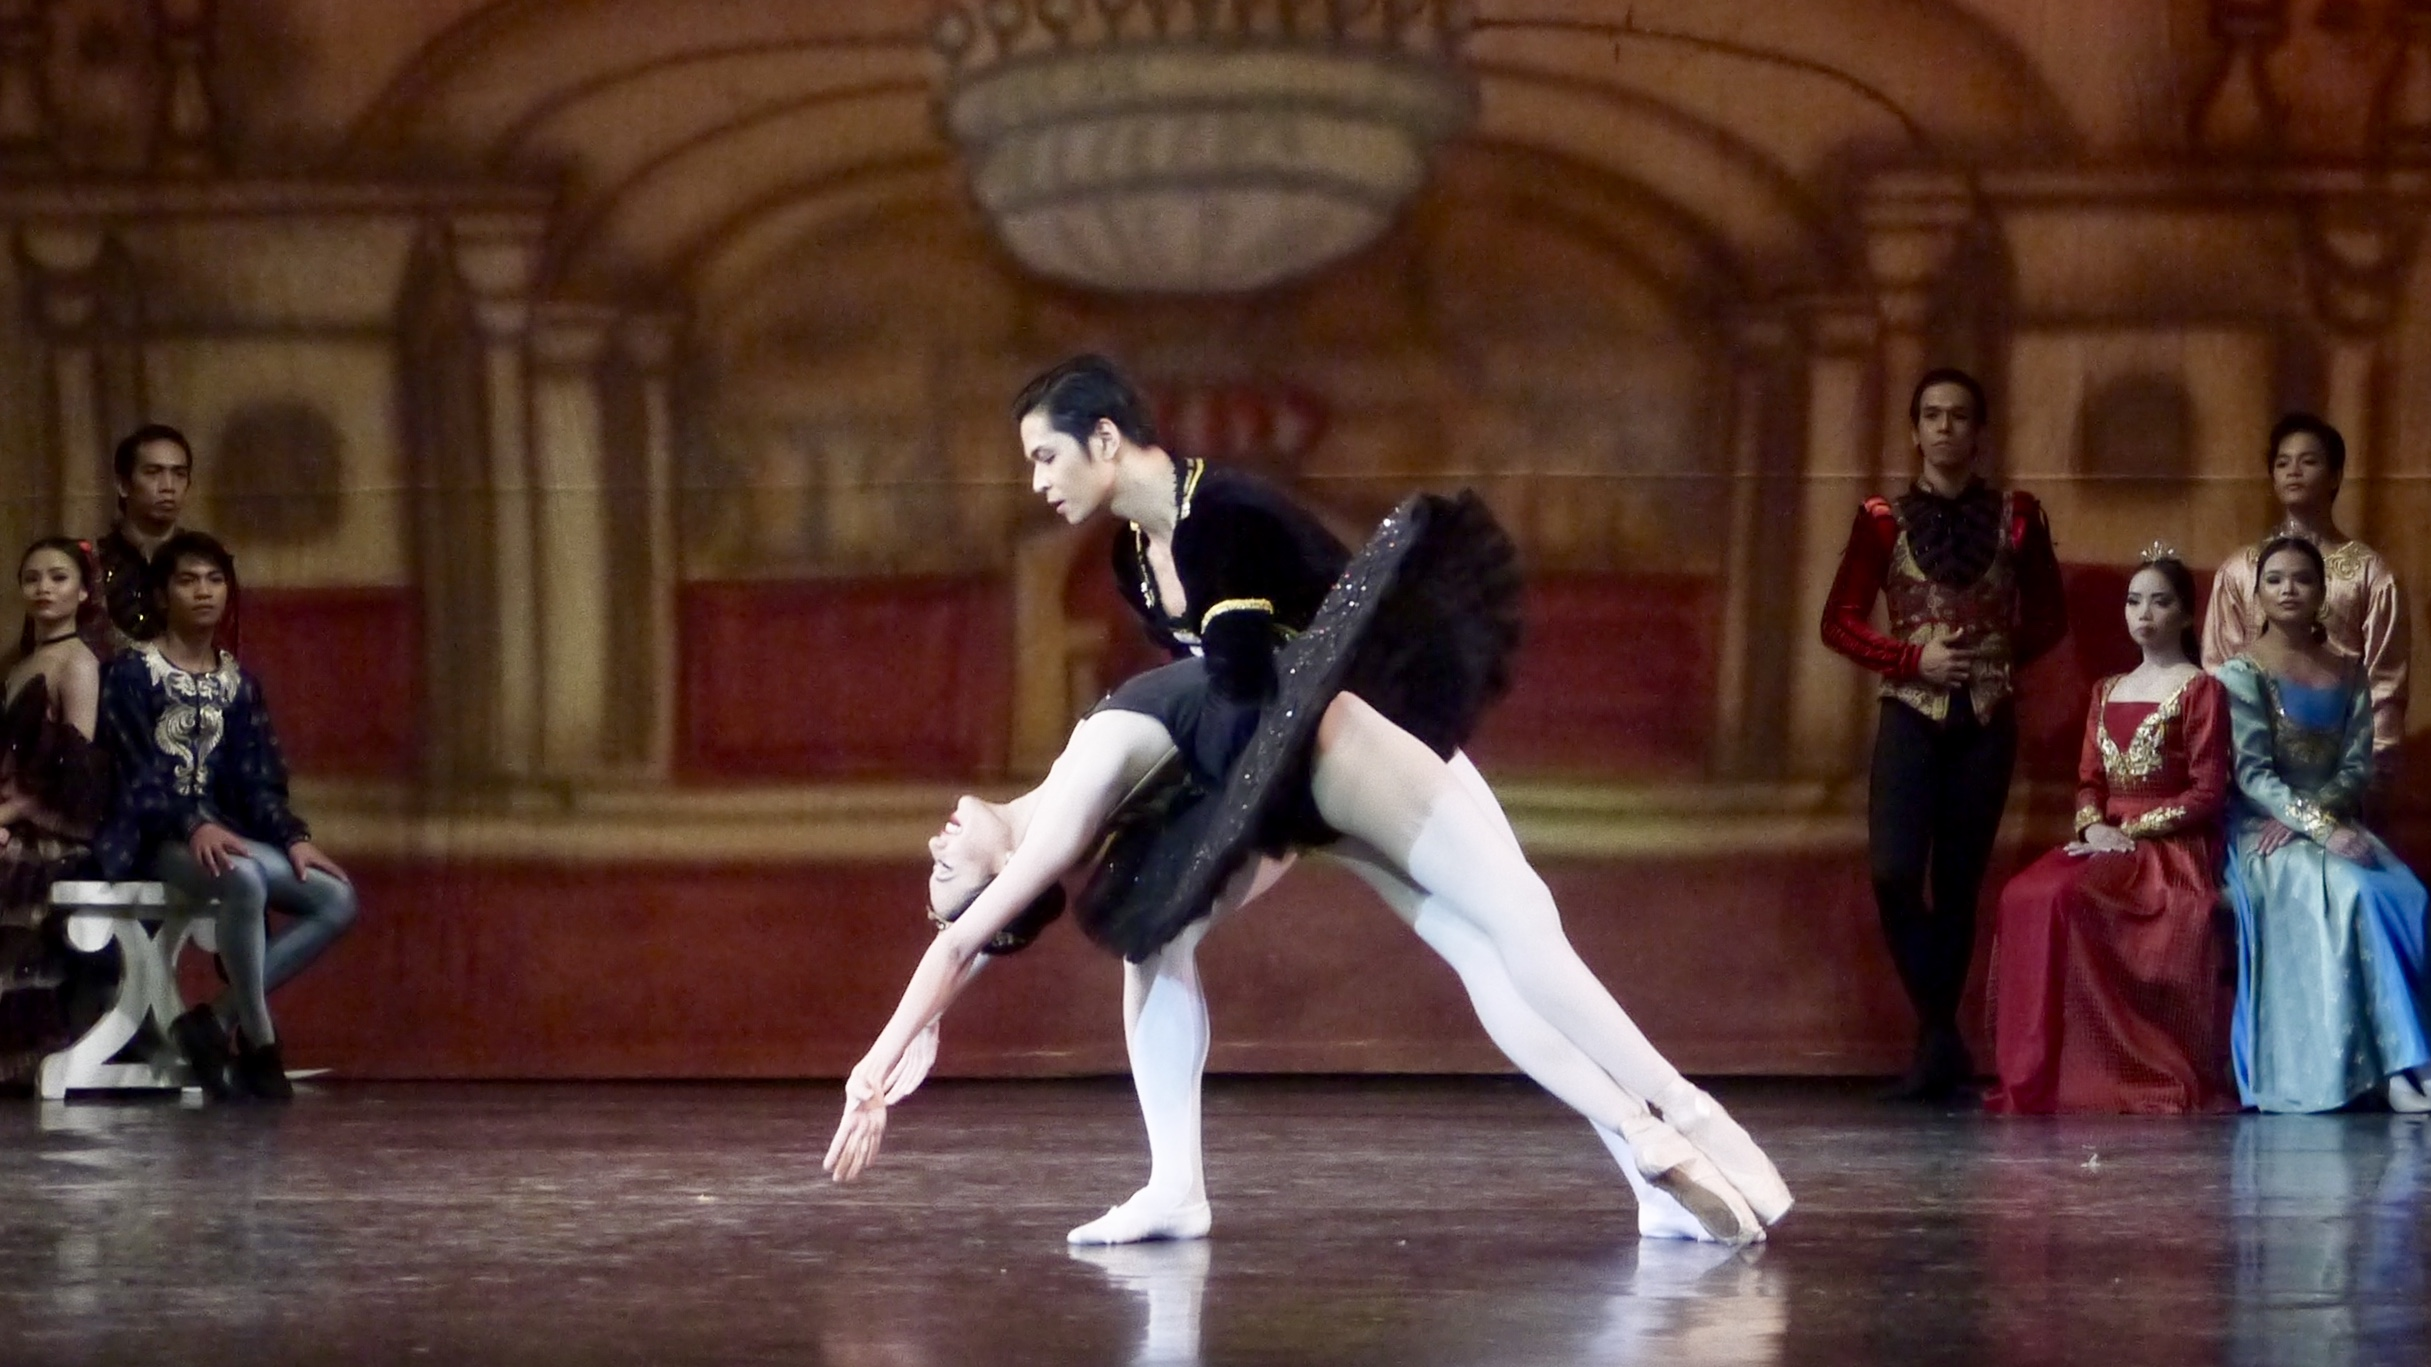 Abigail Oliveiro as Odile, the Black Swan, and Mark Sumaylo as Prince Siegfried. Photo by Giselle P. Kasilag